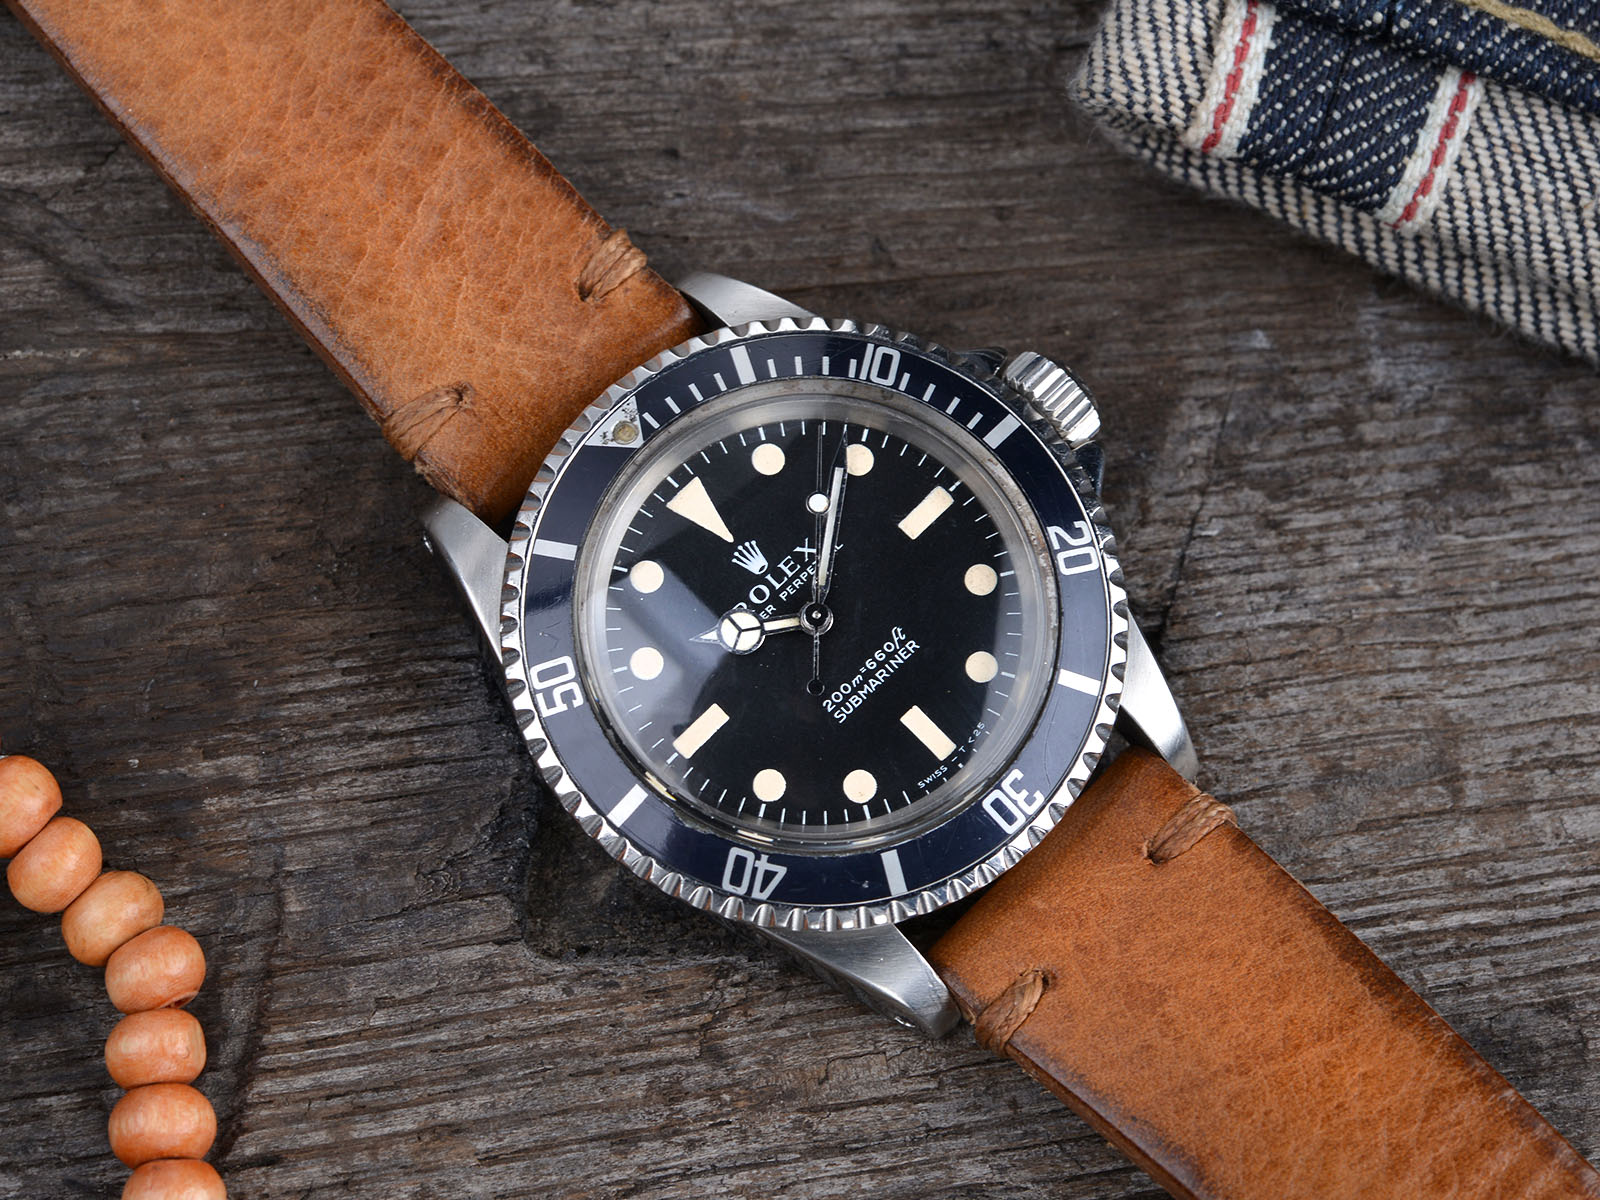 is shop the watches style and vicariously readily vintage under our commit i lead gear purchase a sub found admit weekly to way old best ll actually for my with patrol without part full having me